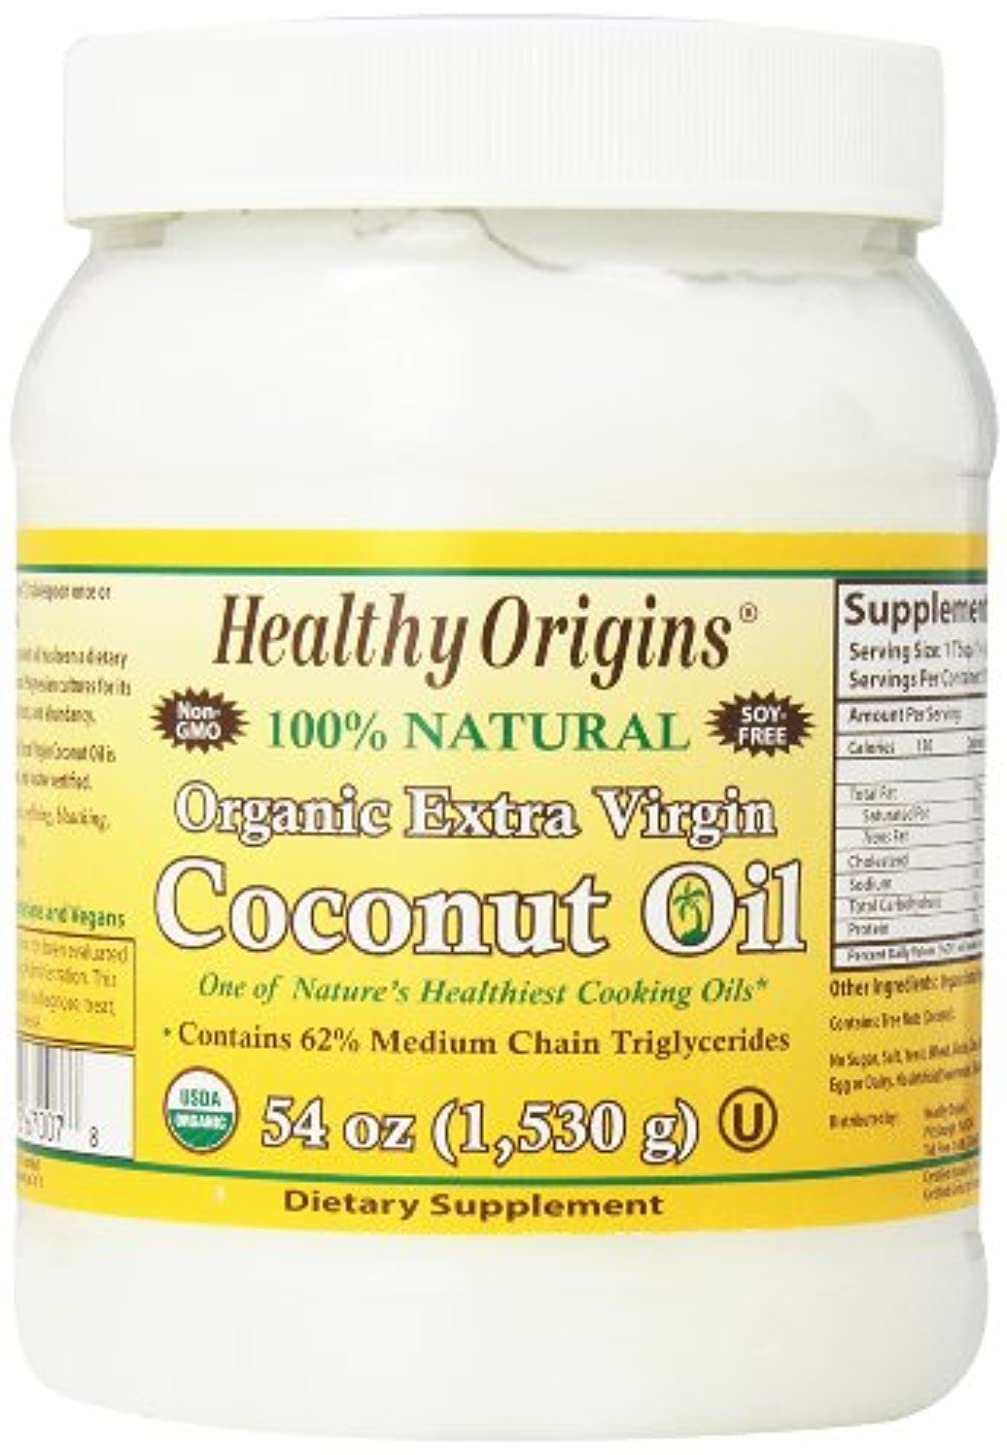 パターン興味人物海外直送品Organic Extra Virgin Coconut Oil, 54 Oz by Healthy Origins